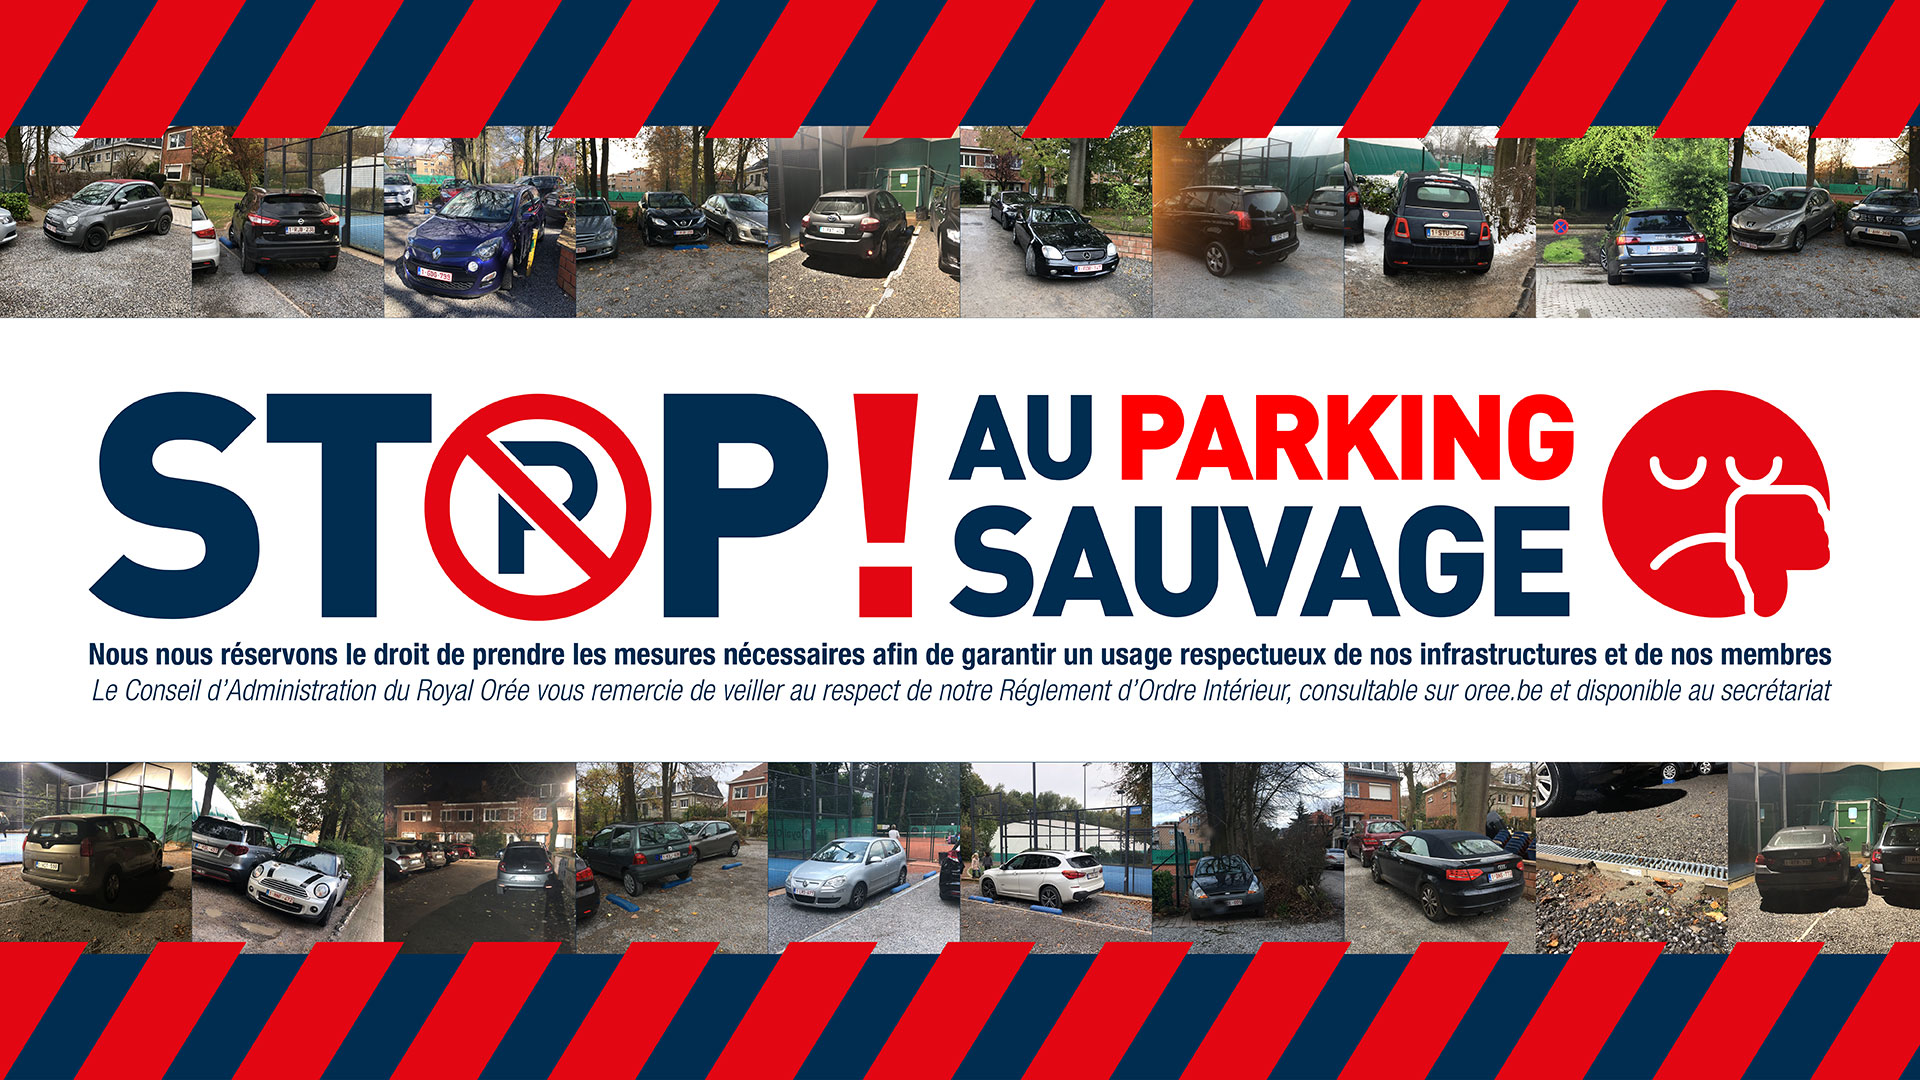 Stop au parking sauvage